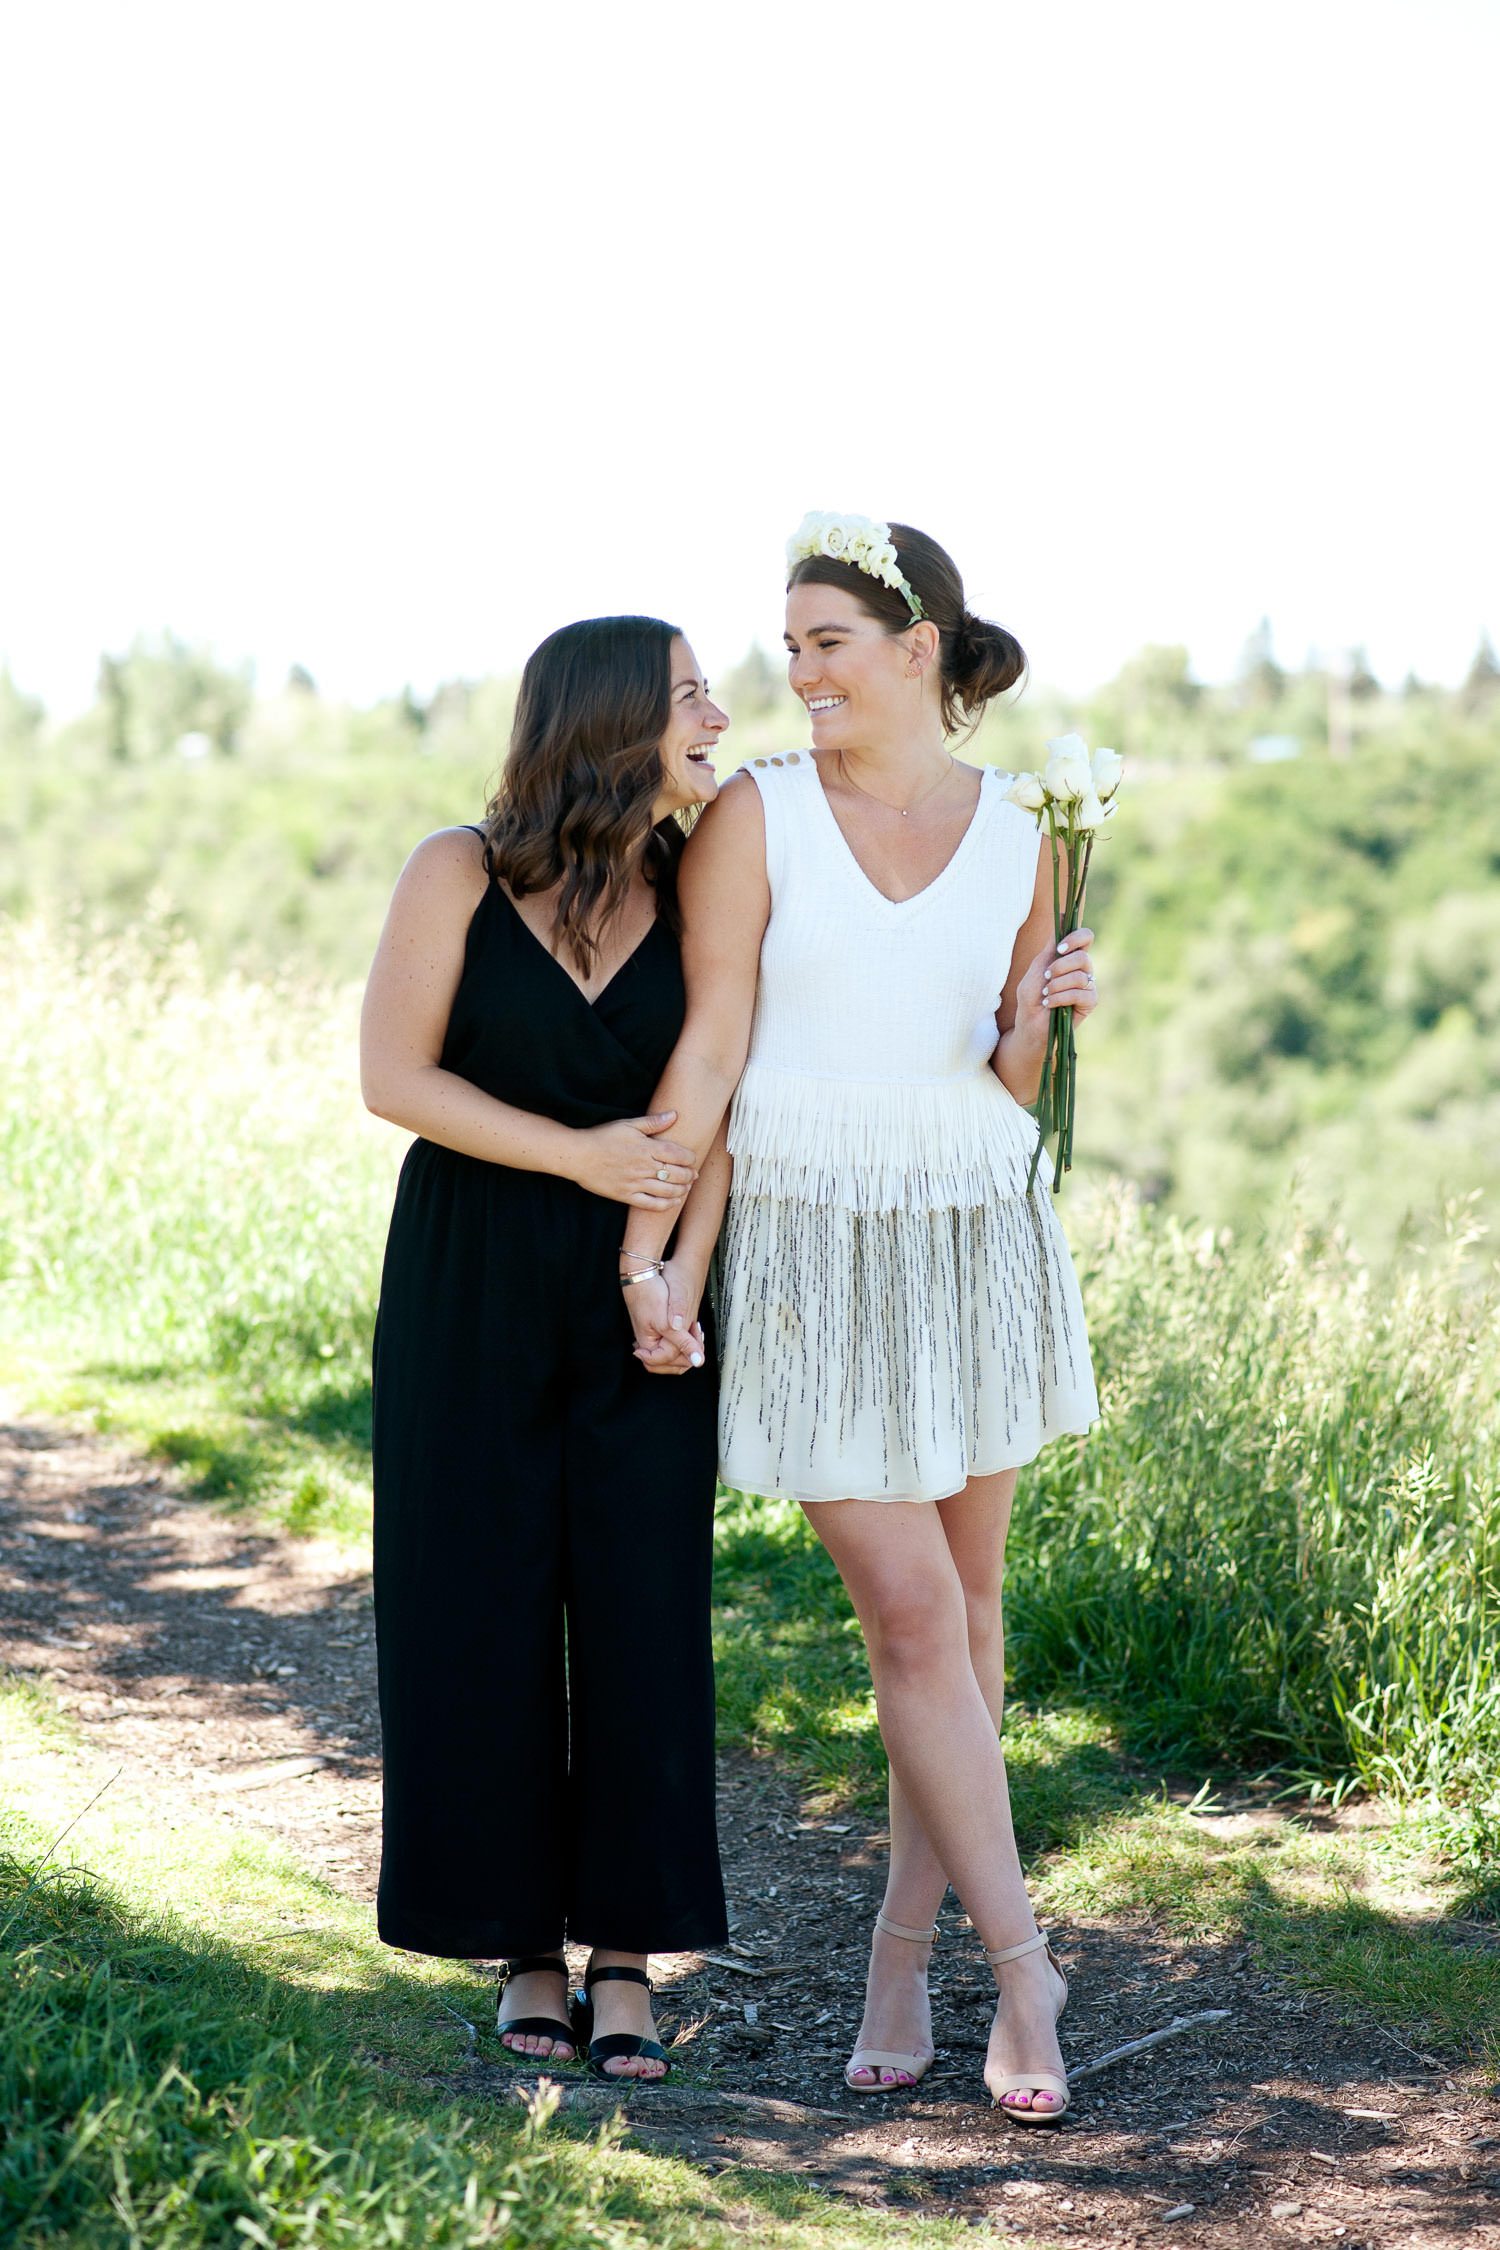 Dani and bridesmaid at bride tribe celebration in Calgary captured by Tara Whittaker Photography